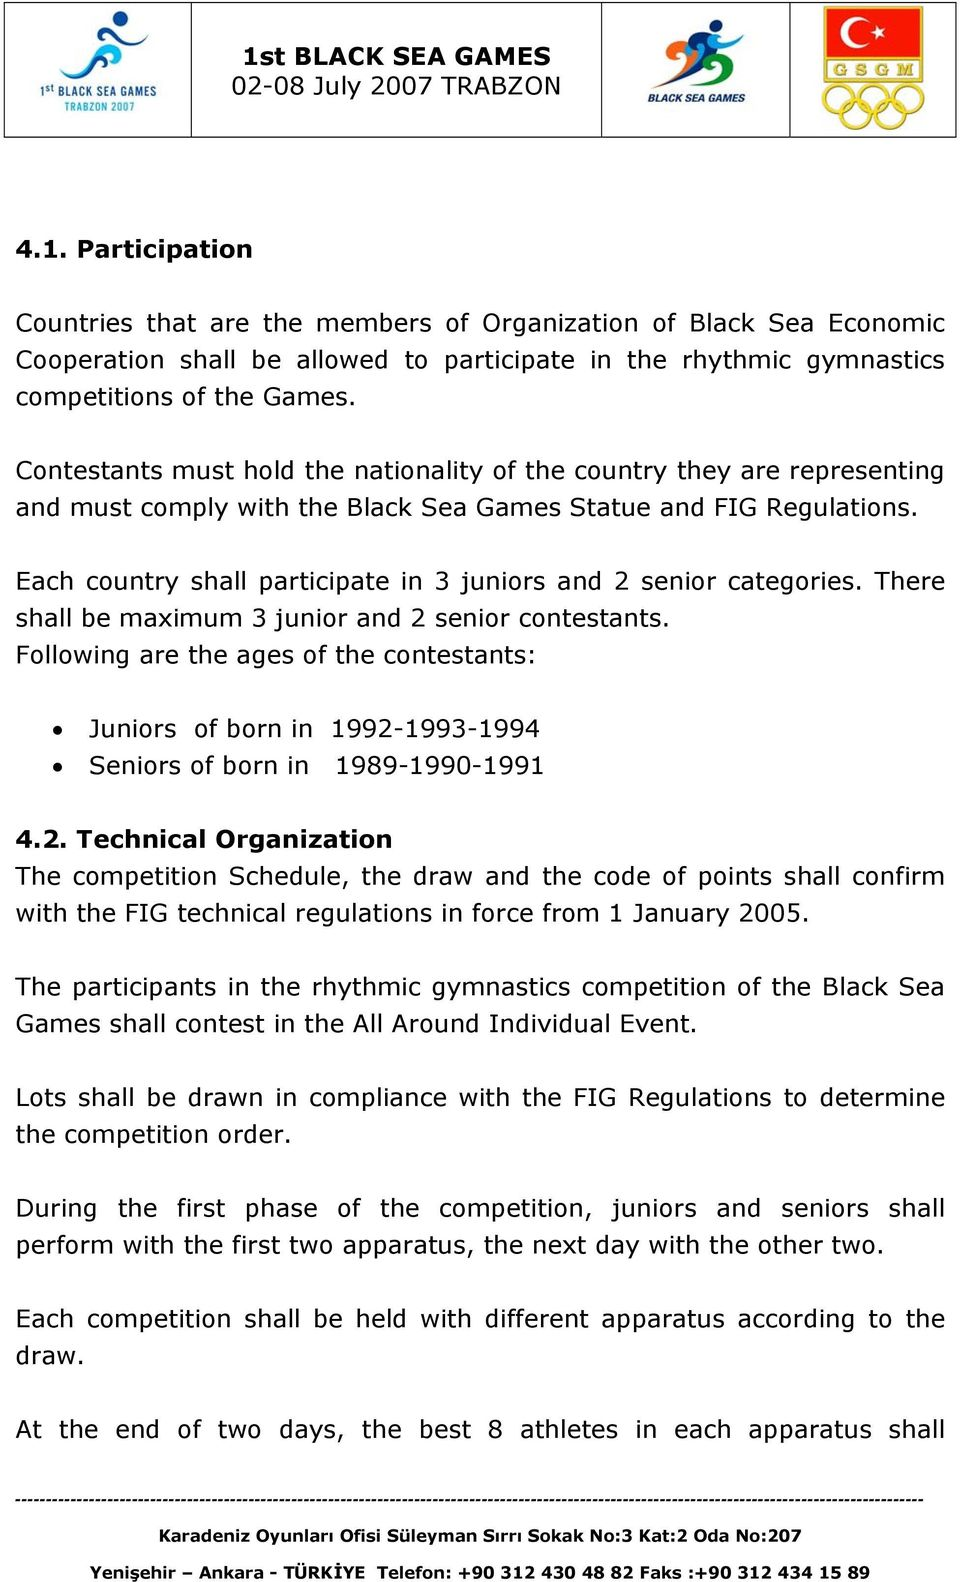 Each country shall participate in 3 juniors and 2 senior categories. There shall be maximum 3 junior and 2 senior contestants.